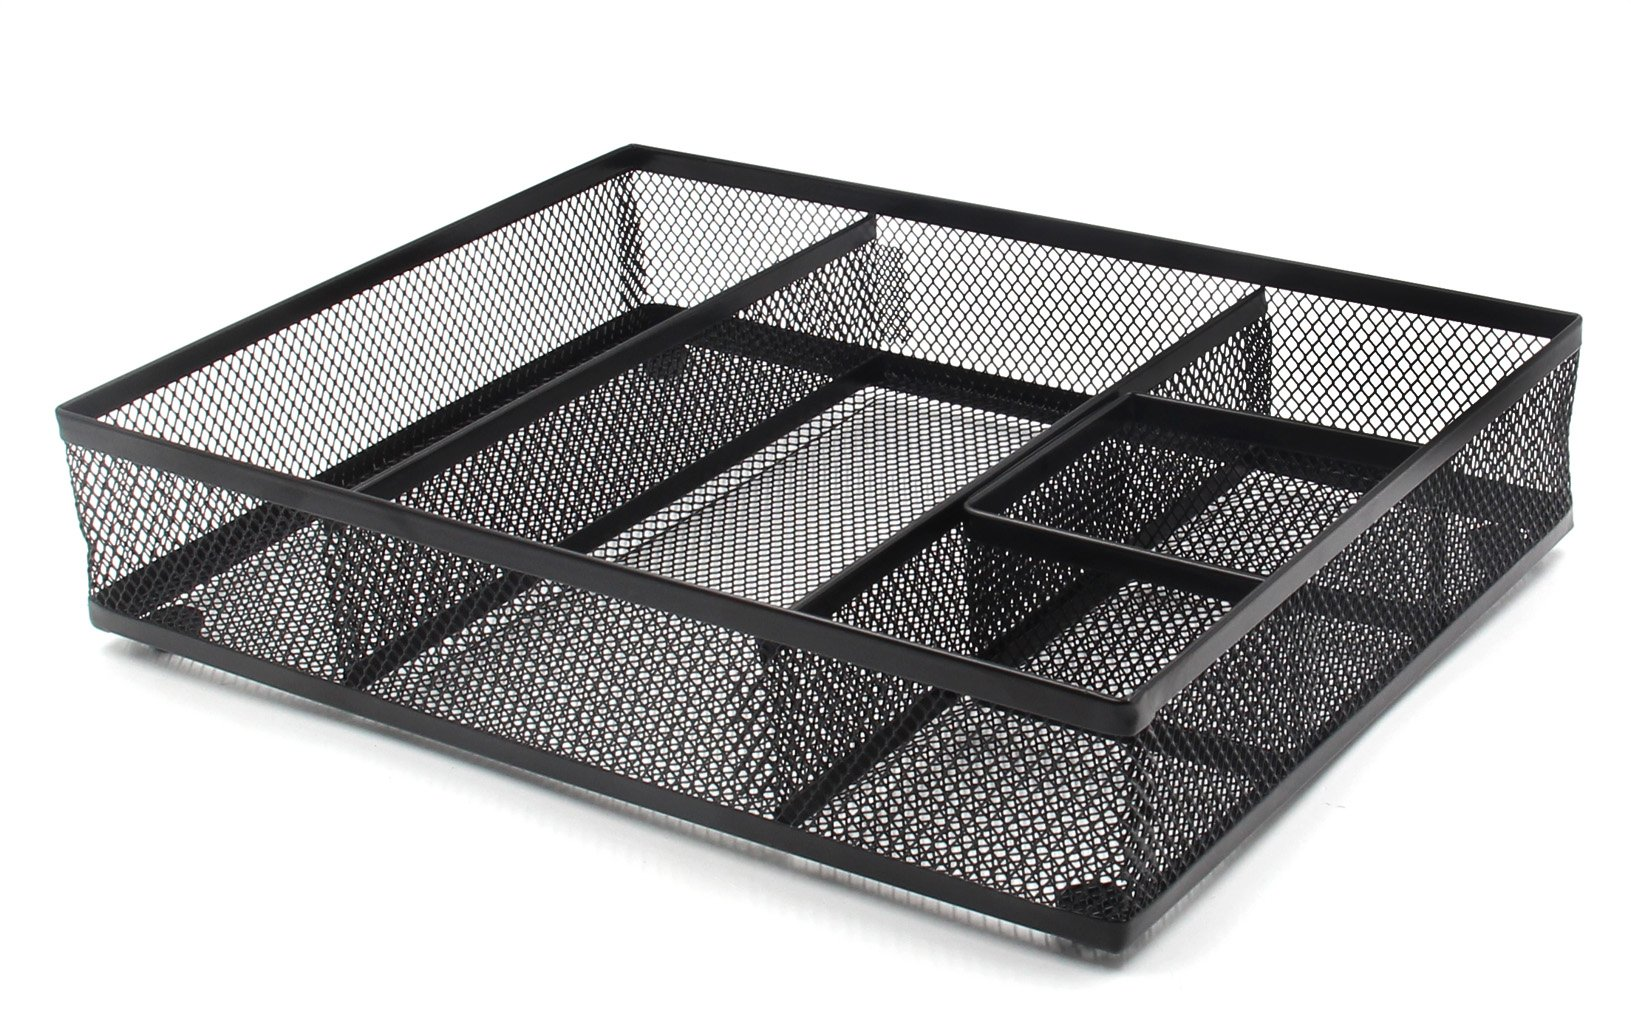 EasyPAG Mesh Collection Desk Accessories Drawer Organizer, Black by EasyPAG